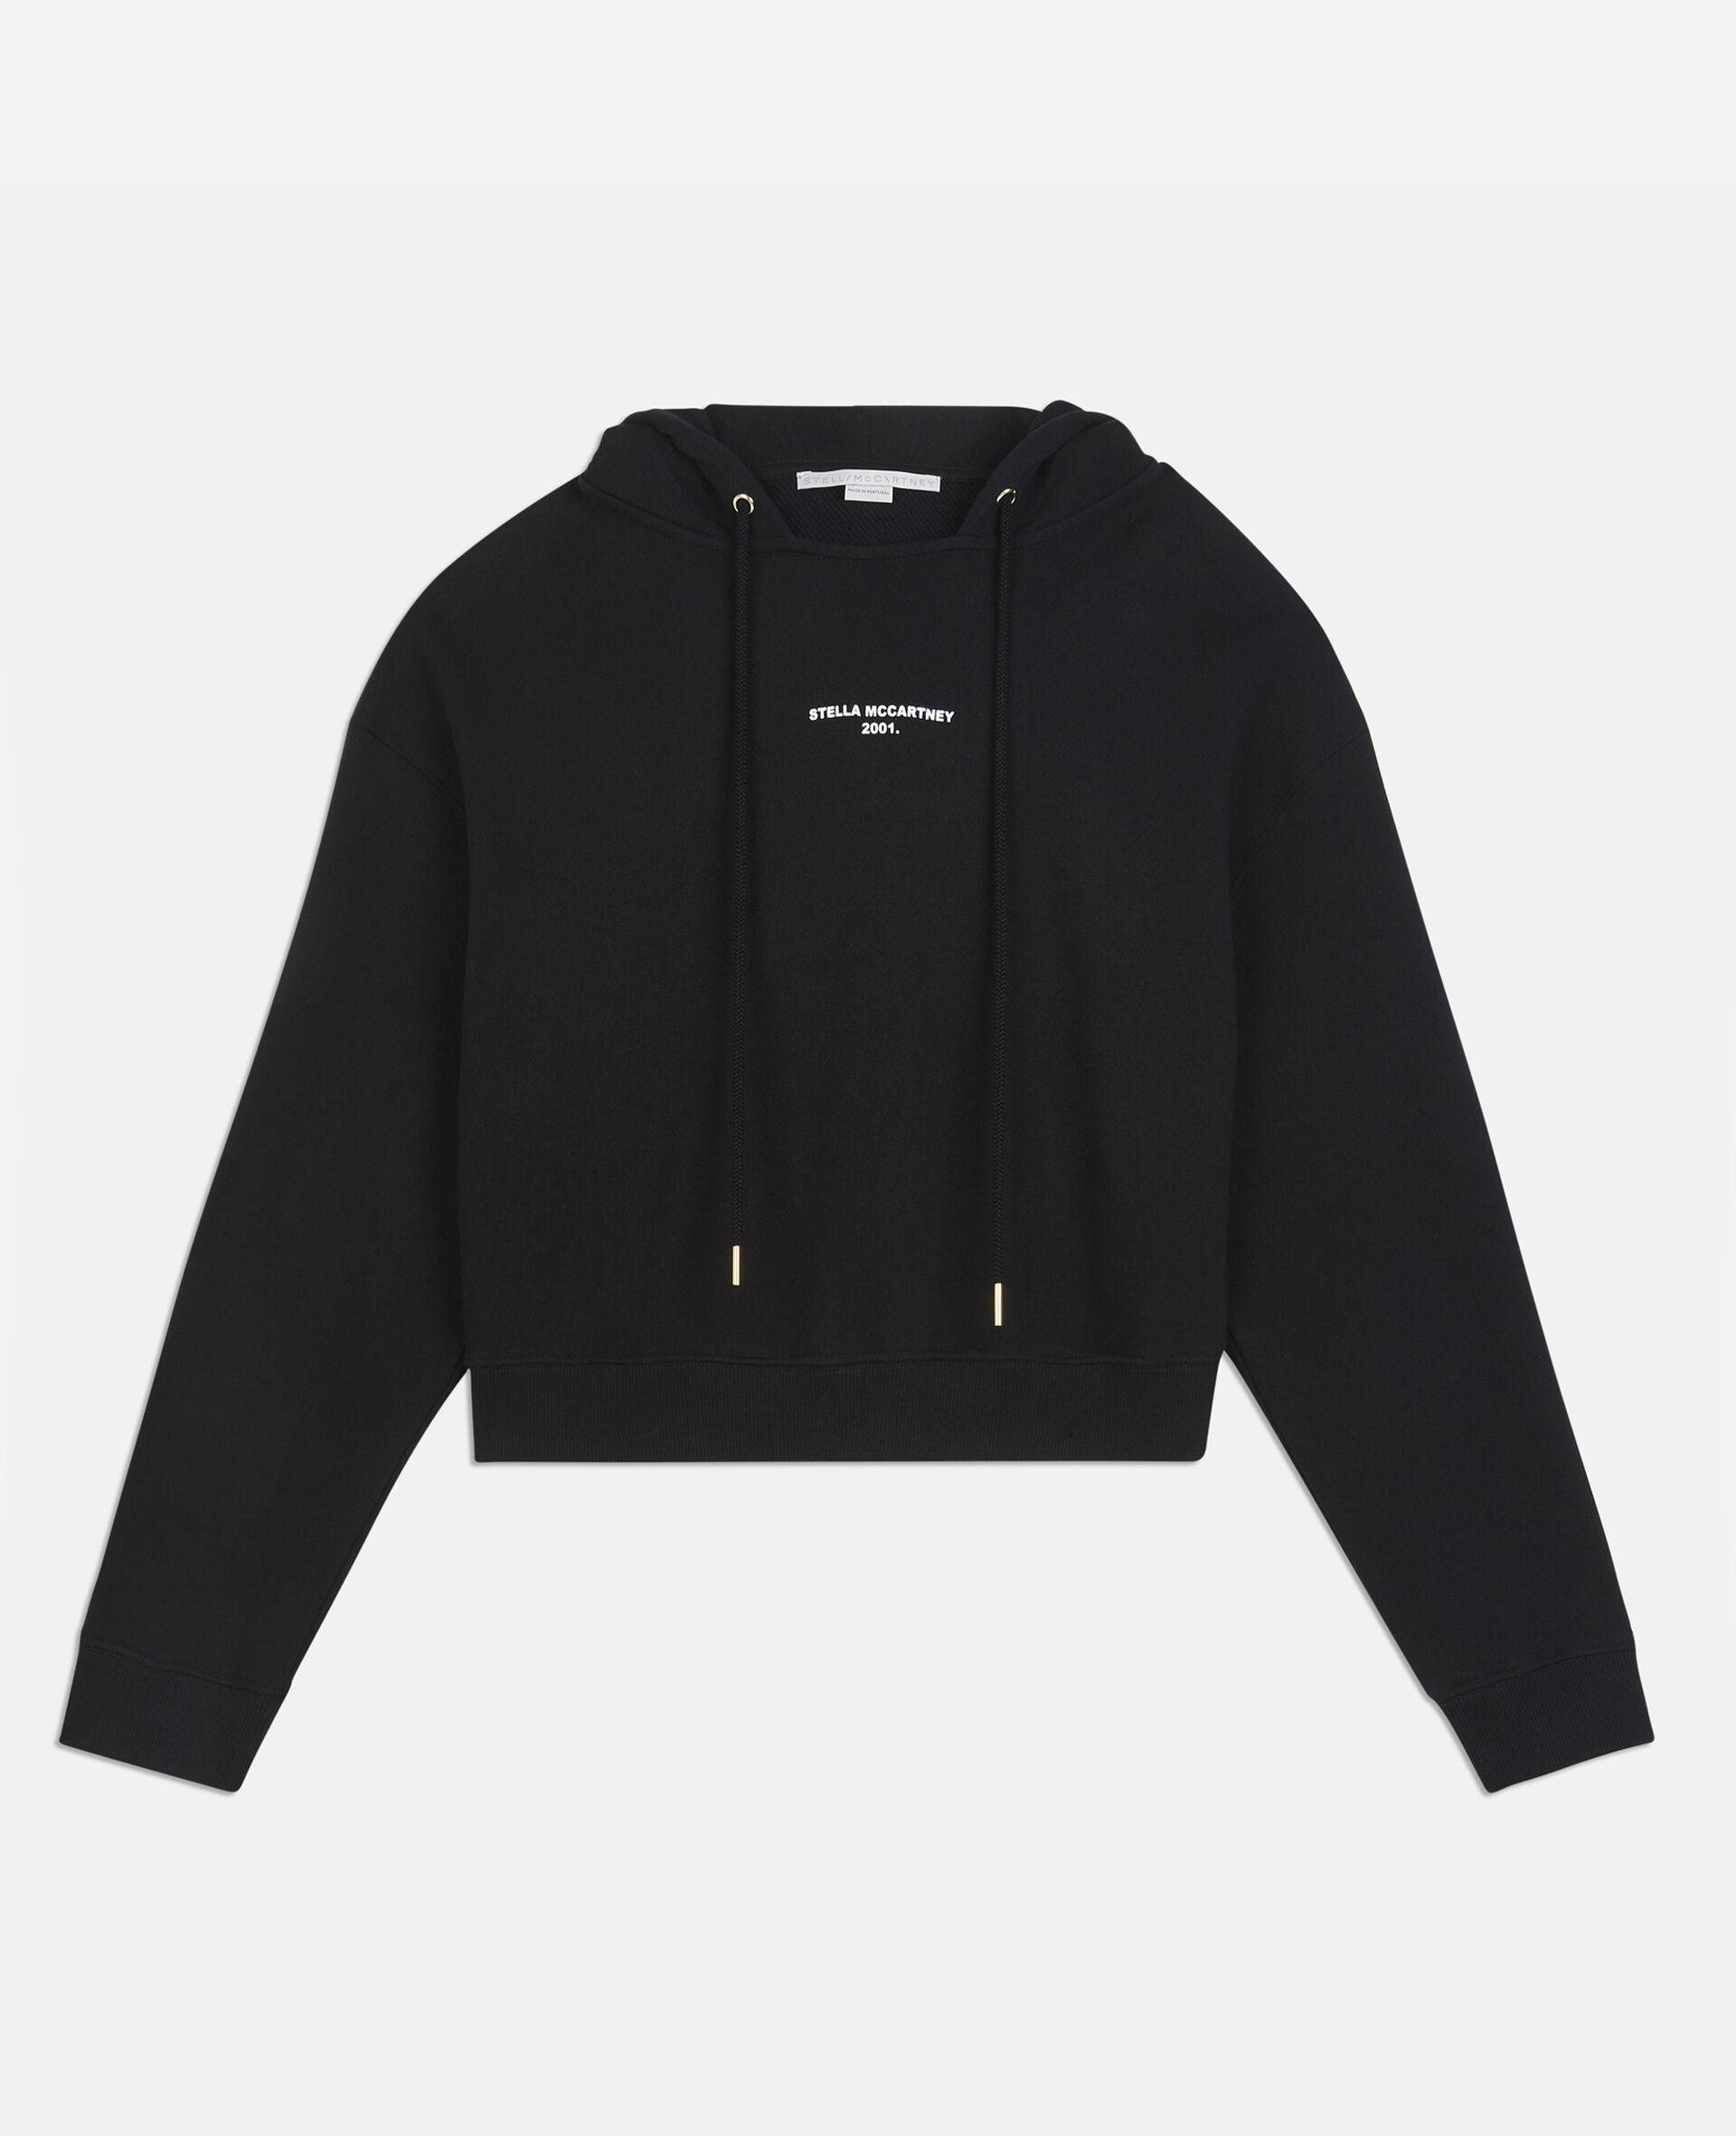 Stella McCartney 2001. Hoodie-Black-large image number 0